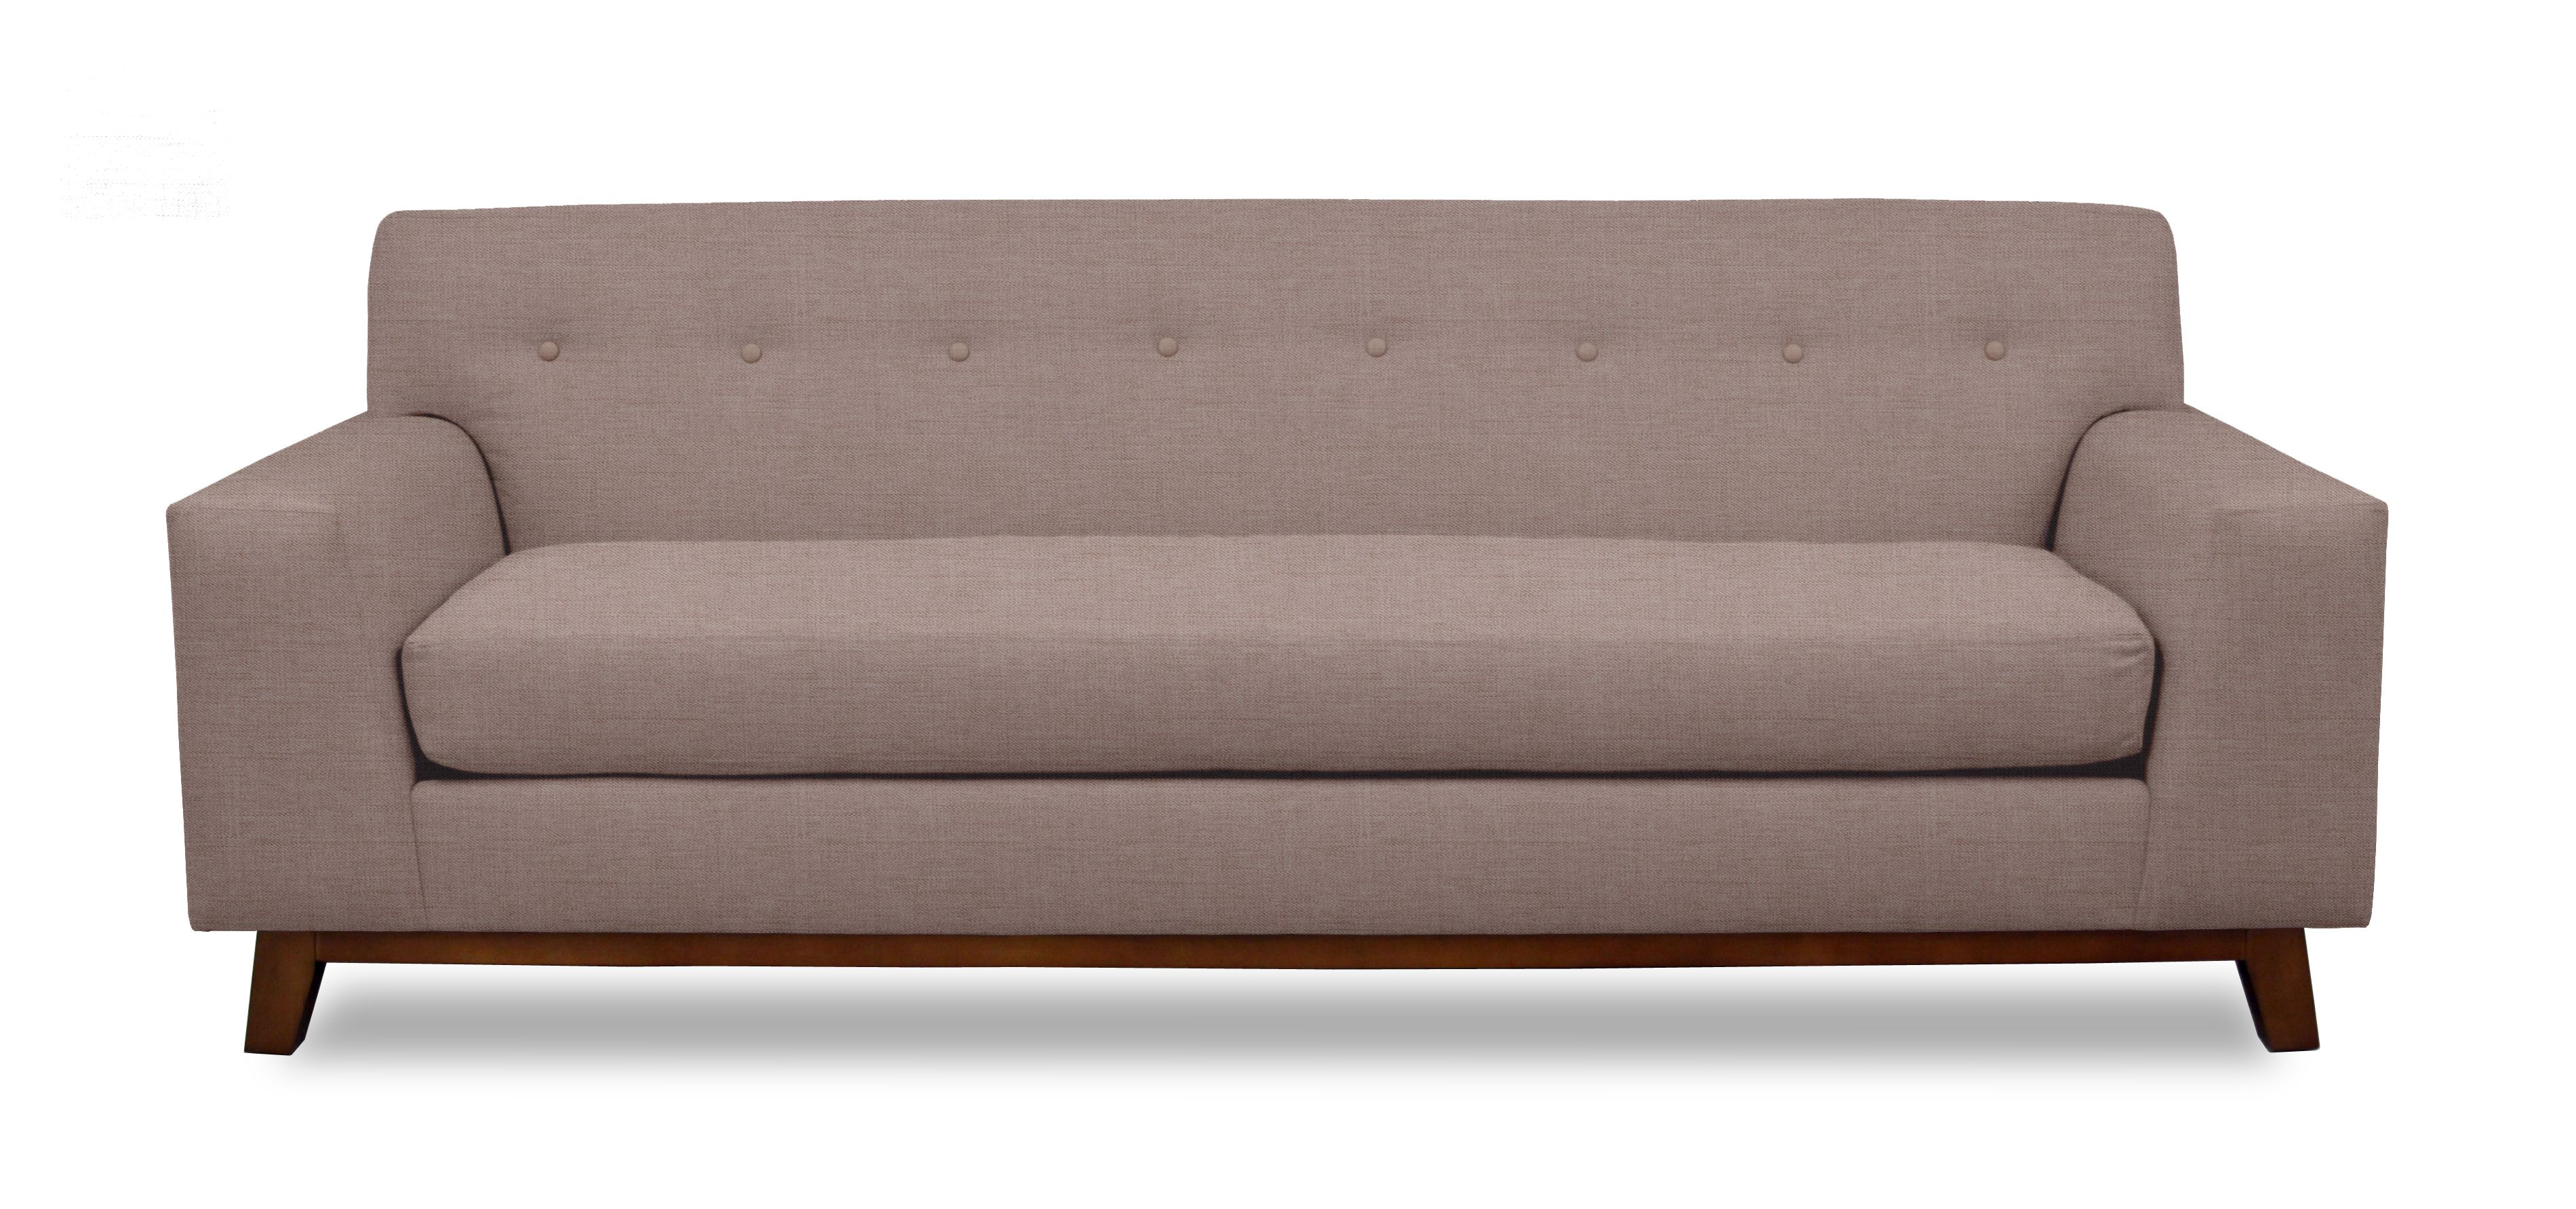 Crypton Fabric Sofa Uk Contemporary Sectional Sofas For Small Spaces Furniture Amazing Design